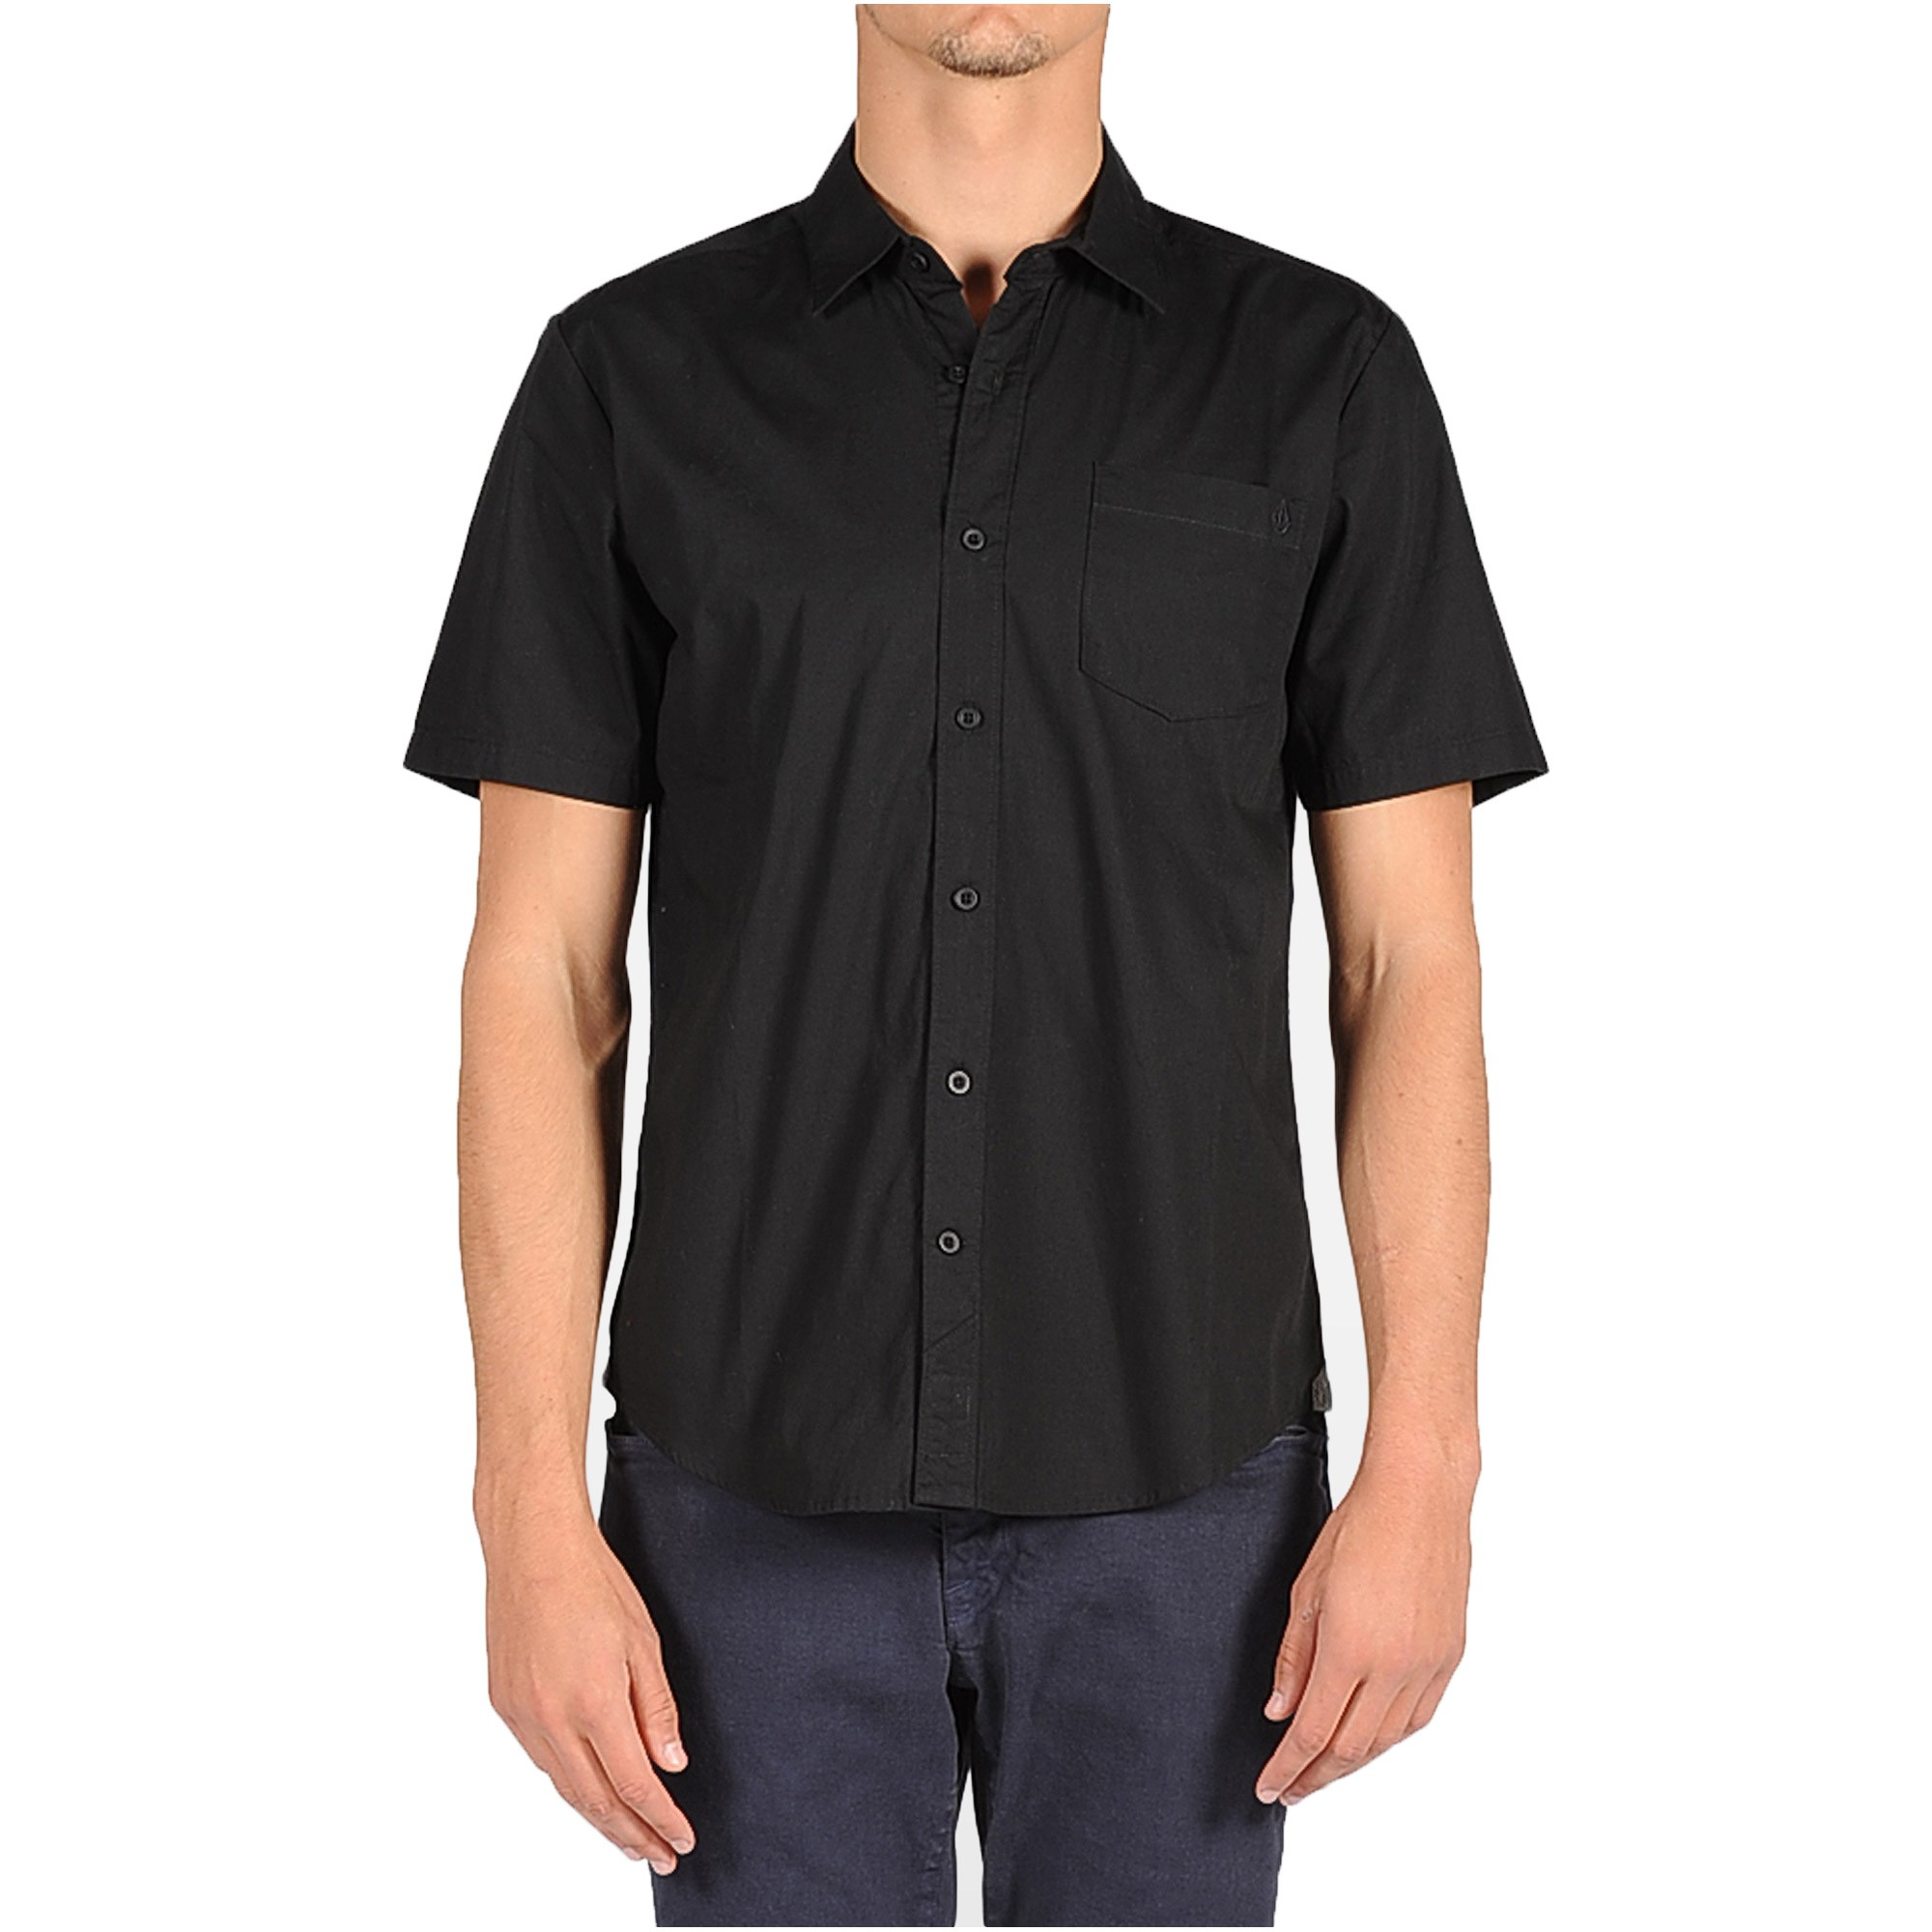 Short black shirt is shirt for Mens black short sleeve dress shirt